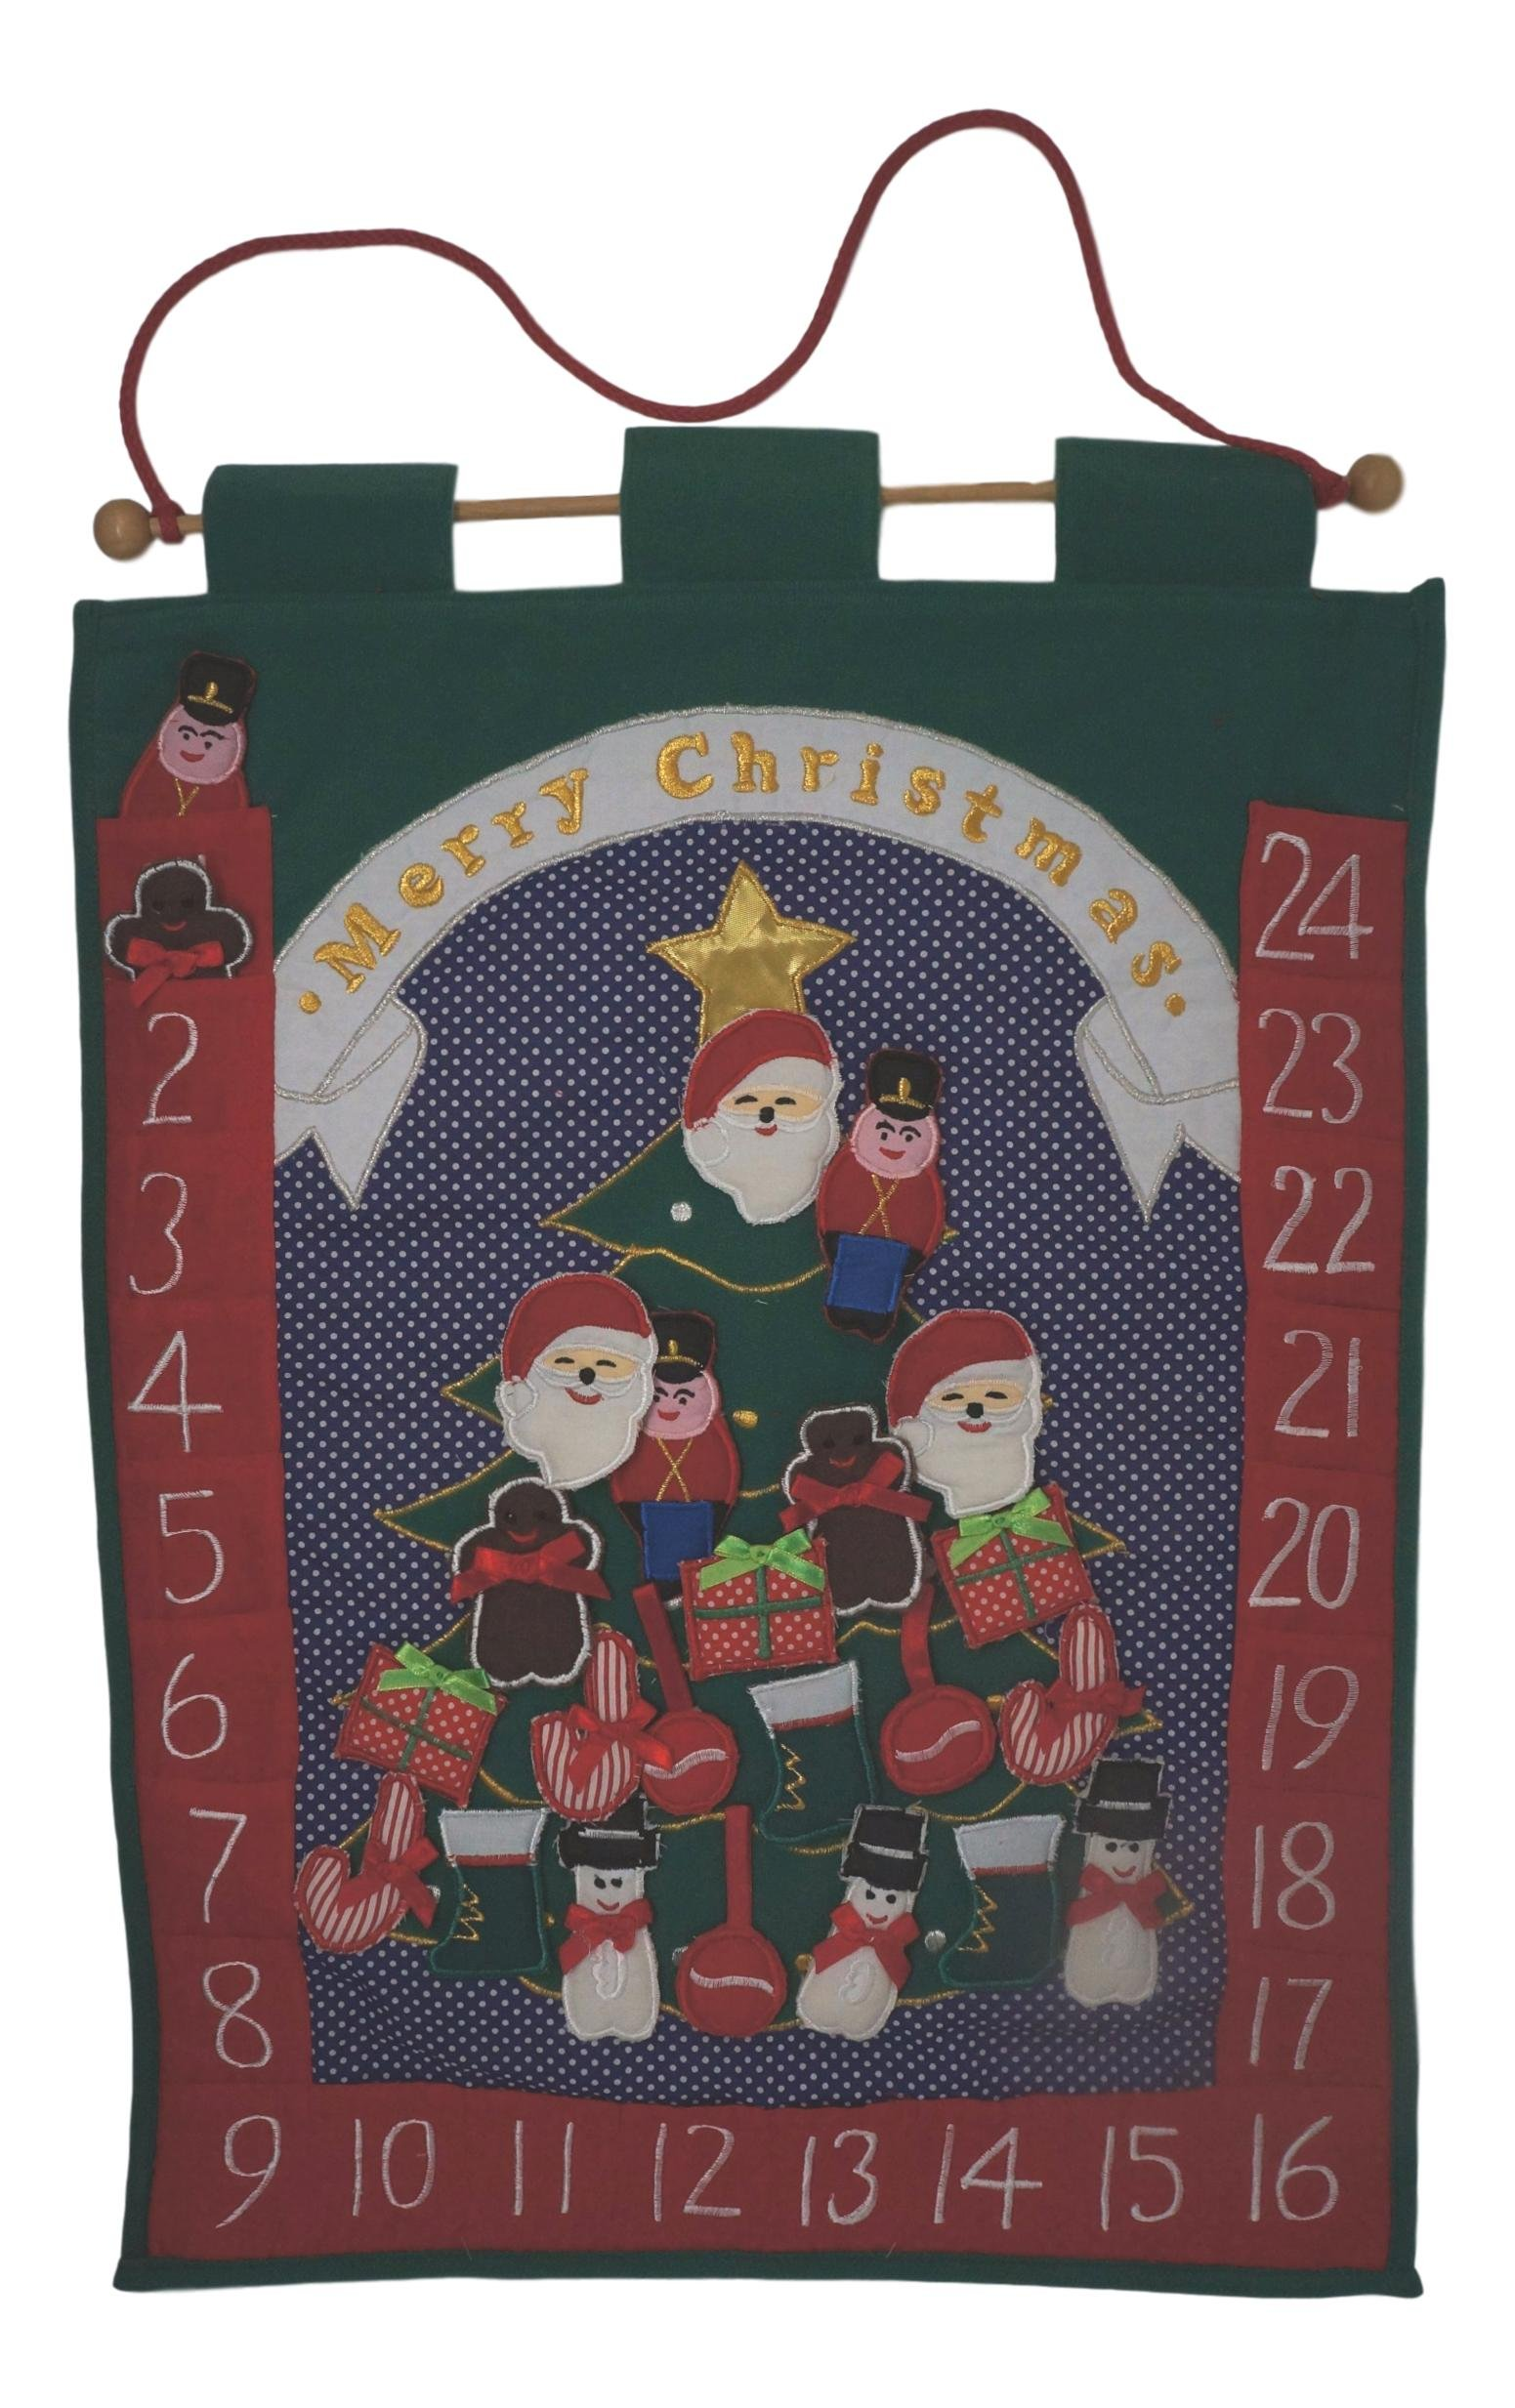 Hanging Hand-Sewn Christmas Advent Calendar by Hanging Hand-Sewn